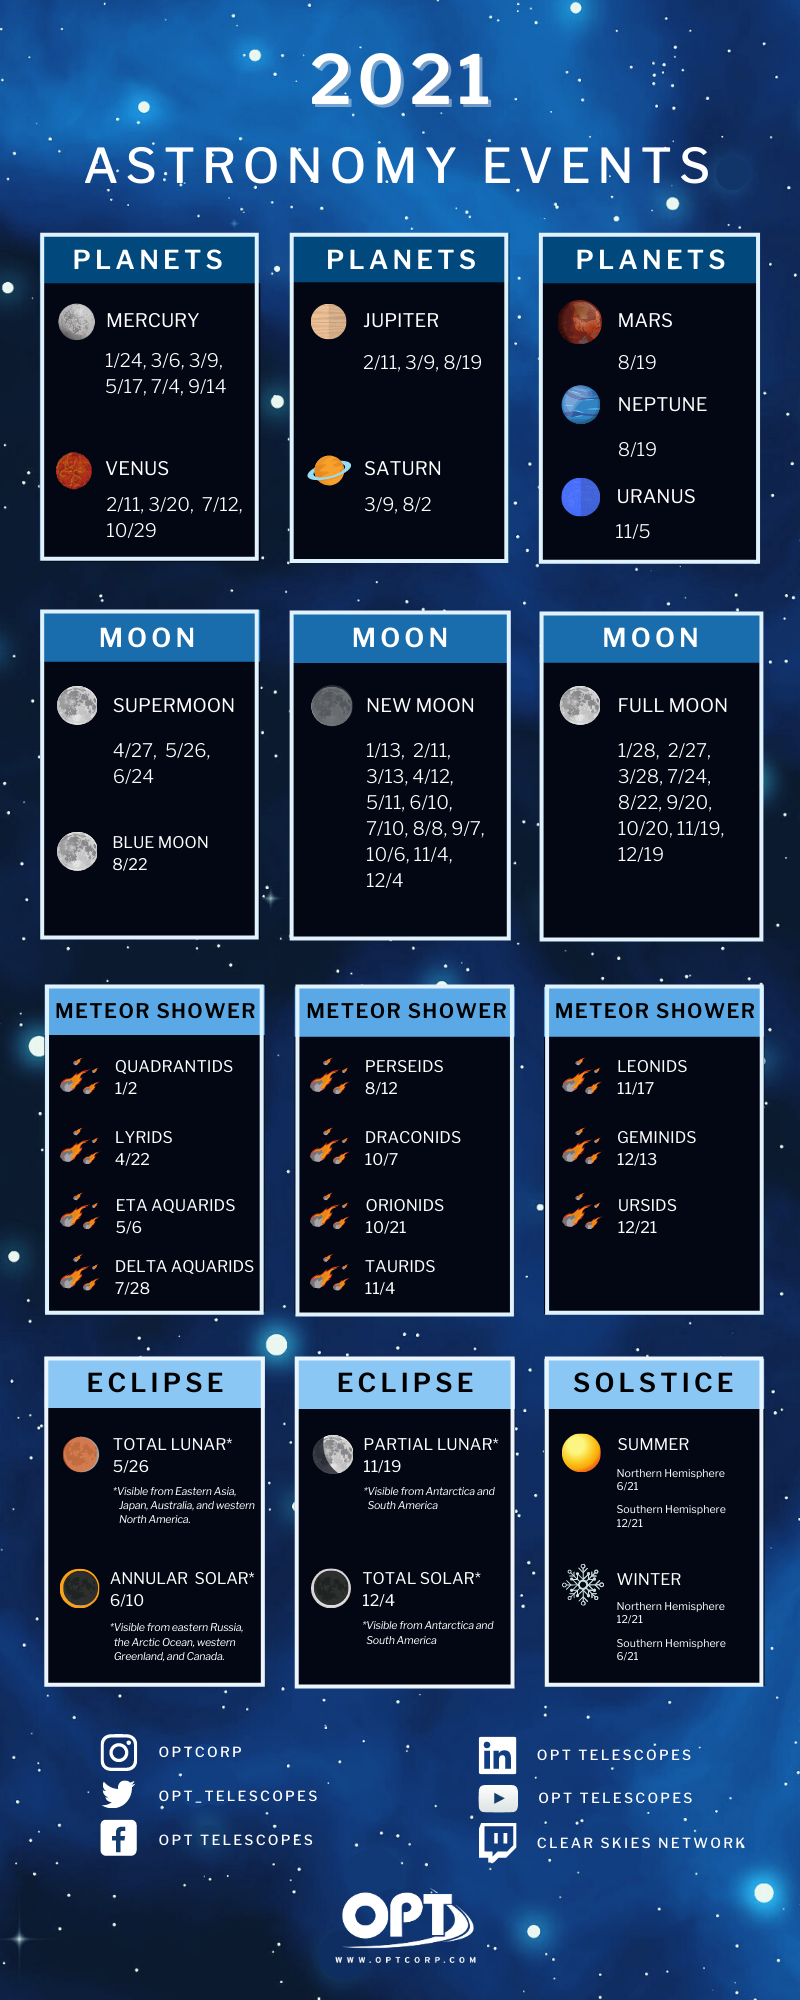 Astronomical Events 2021